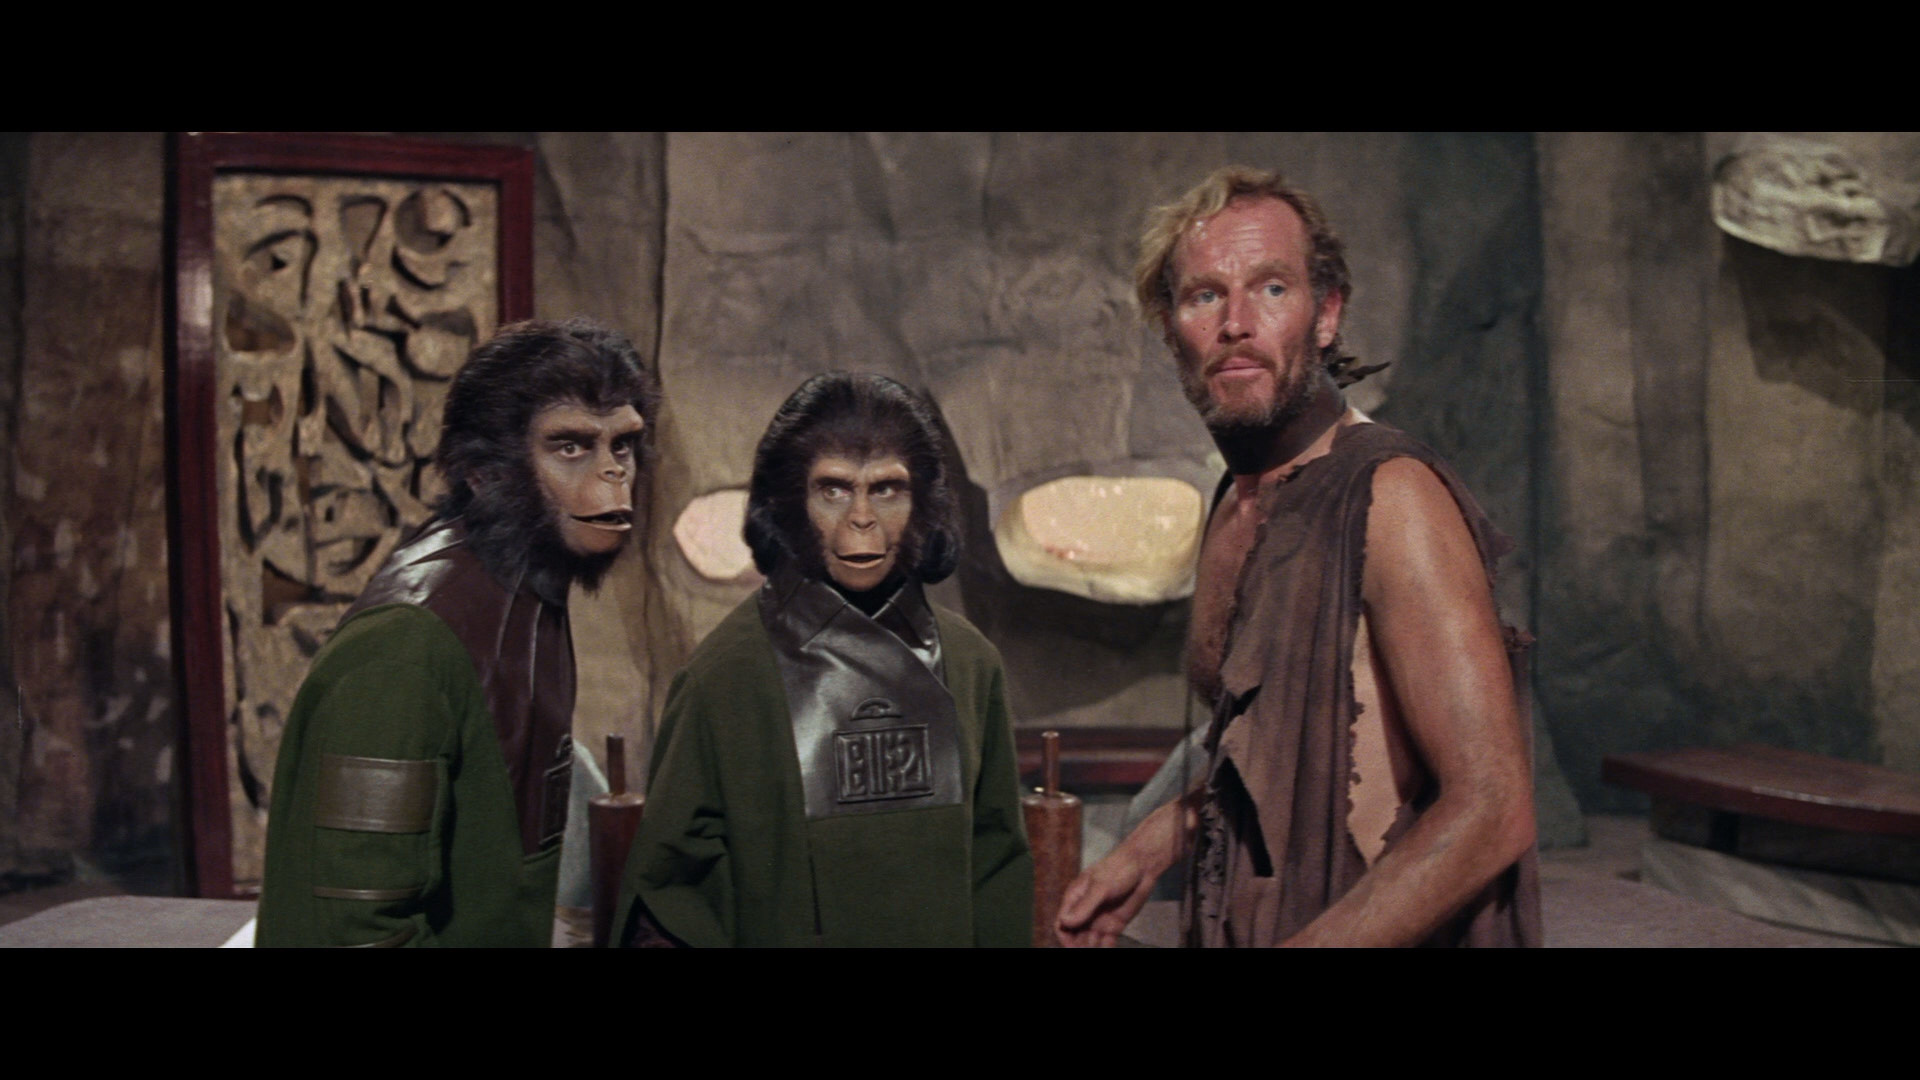 https://www.alux.com/wp-content/uploads/2015/07/large-planet-of-the-apes-blu-ray1.jpg